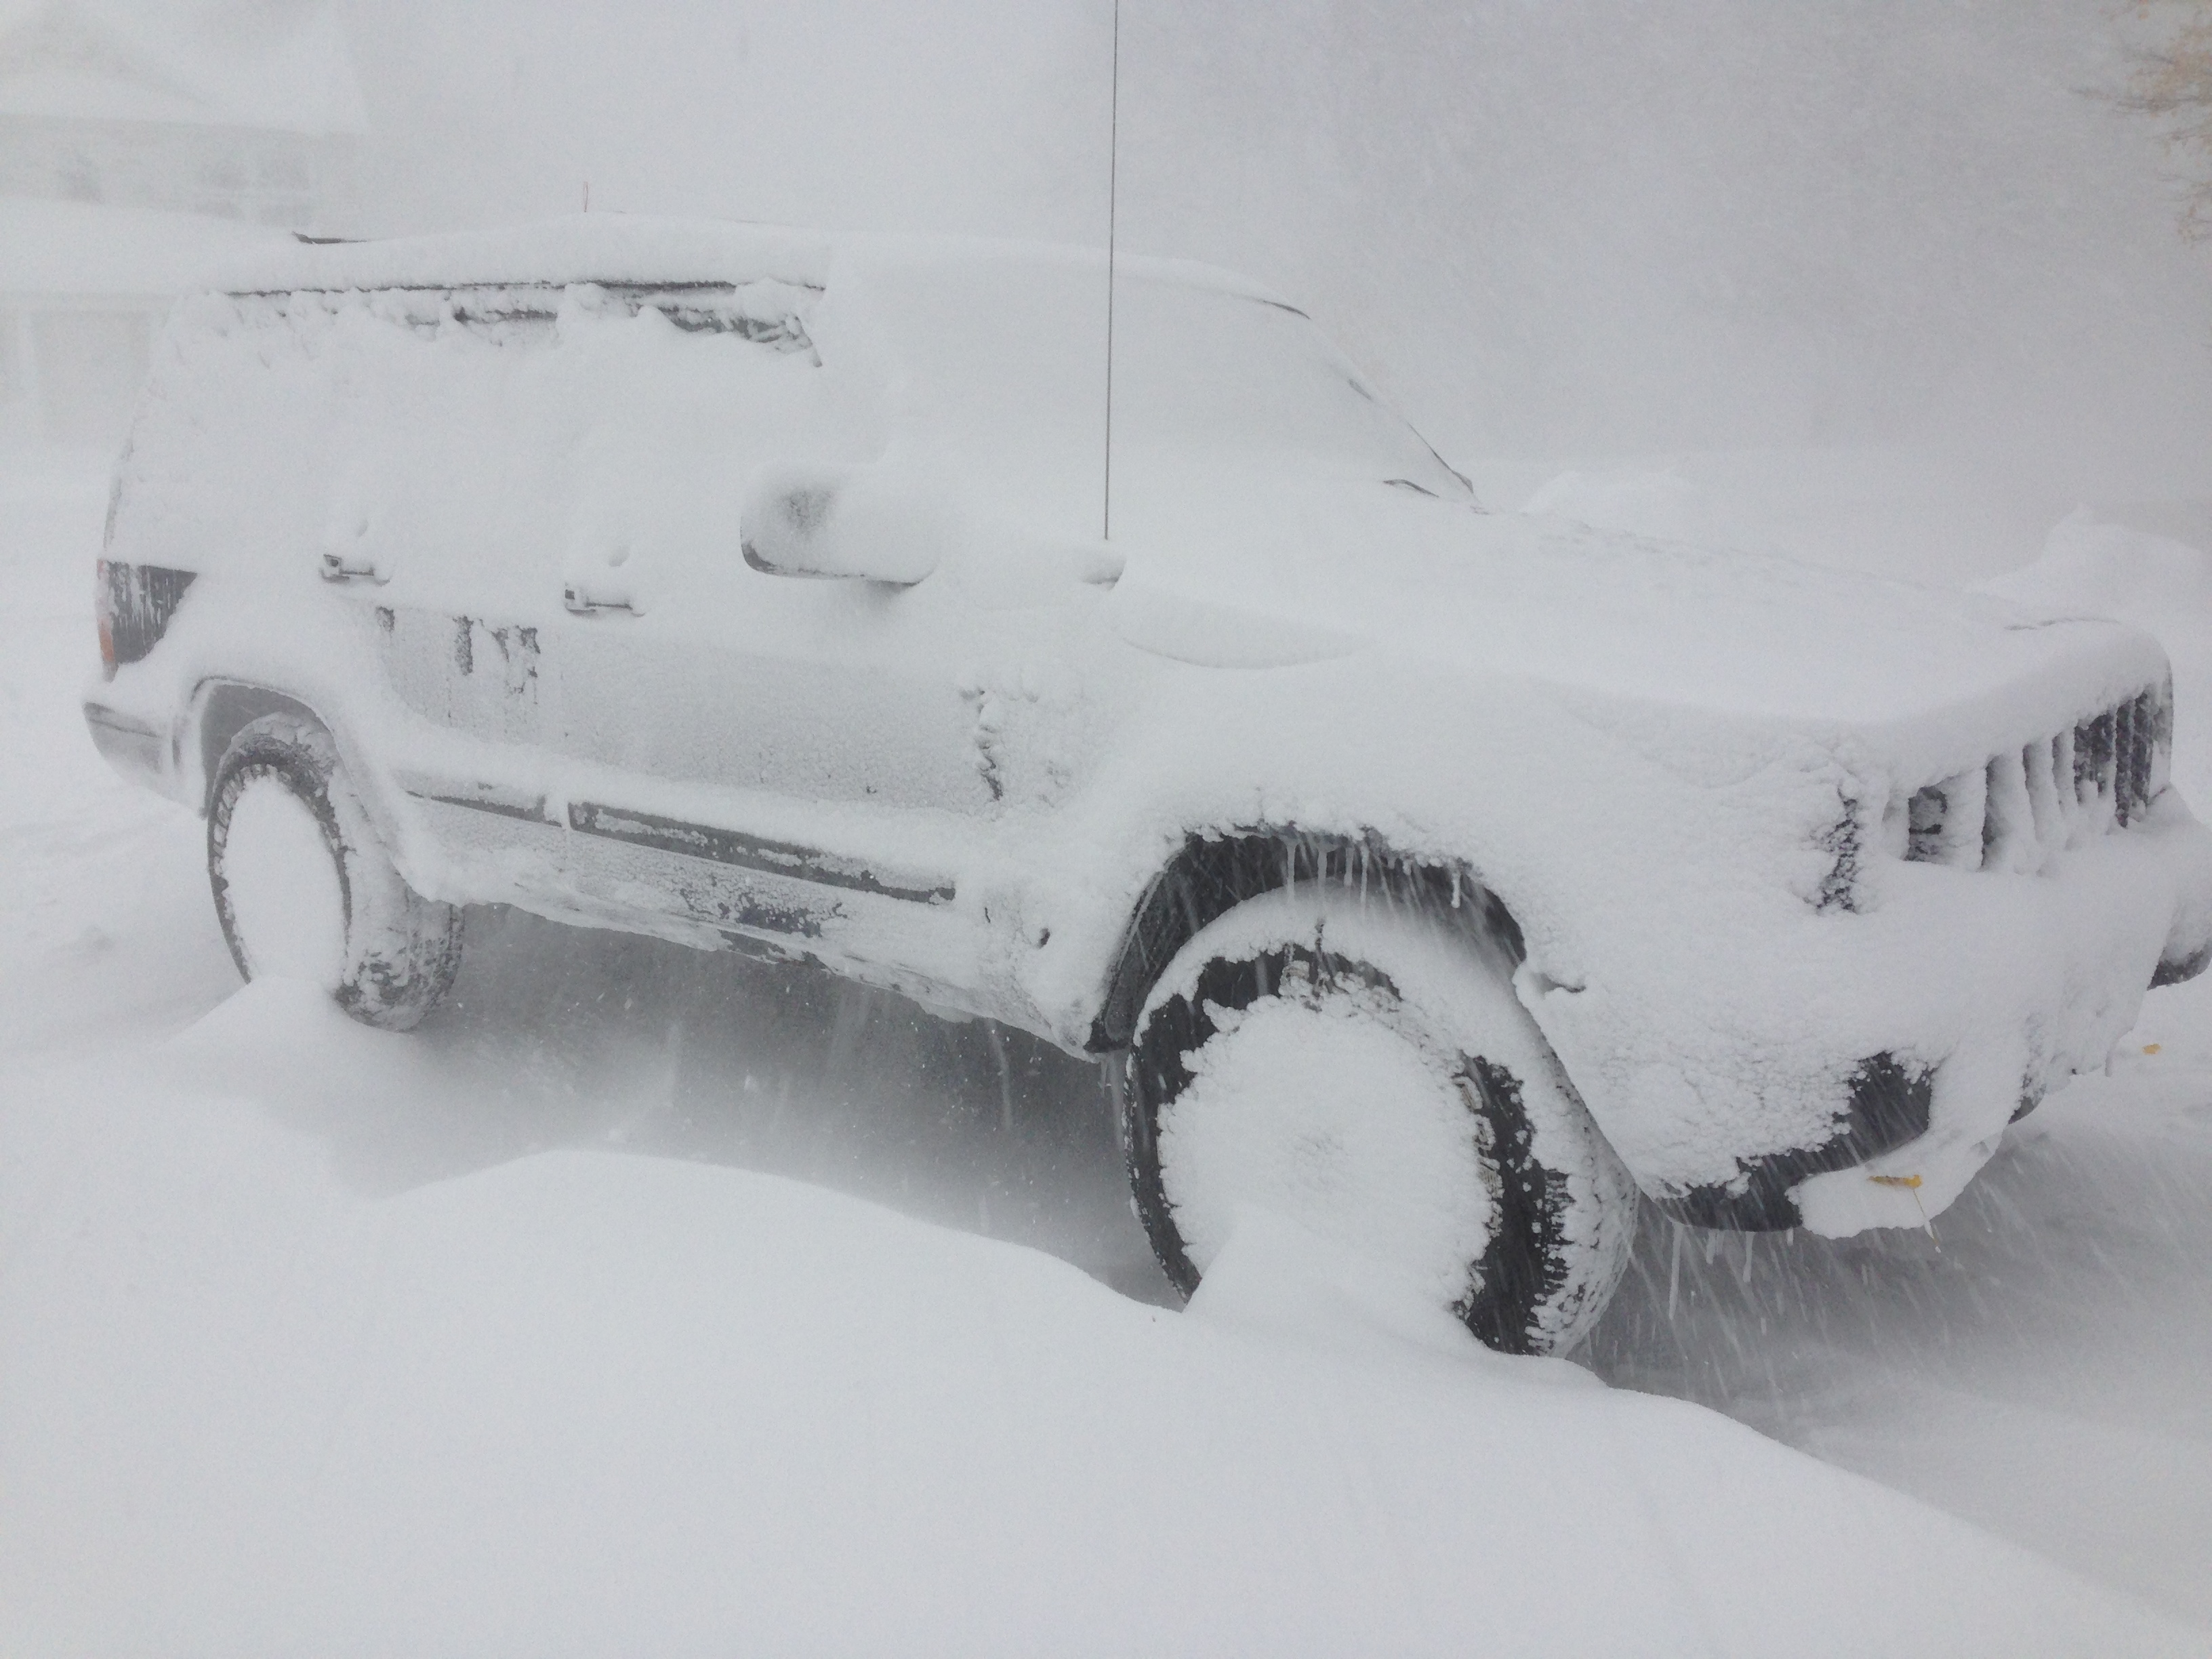 My 2000 Jeep Cherokee boasted more than 232,000 miles and drove through a pair of blizzards before meeting the 'Wall of Snow' on Nov. 18, 2014. We both survived. (T.J. Pignataro / Buffalo News)